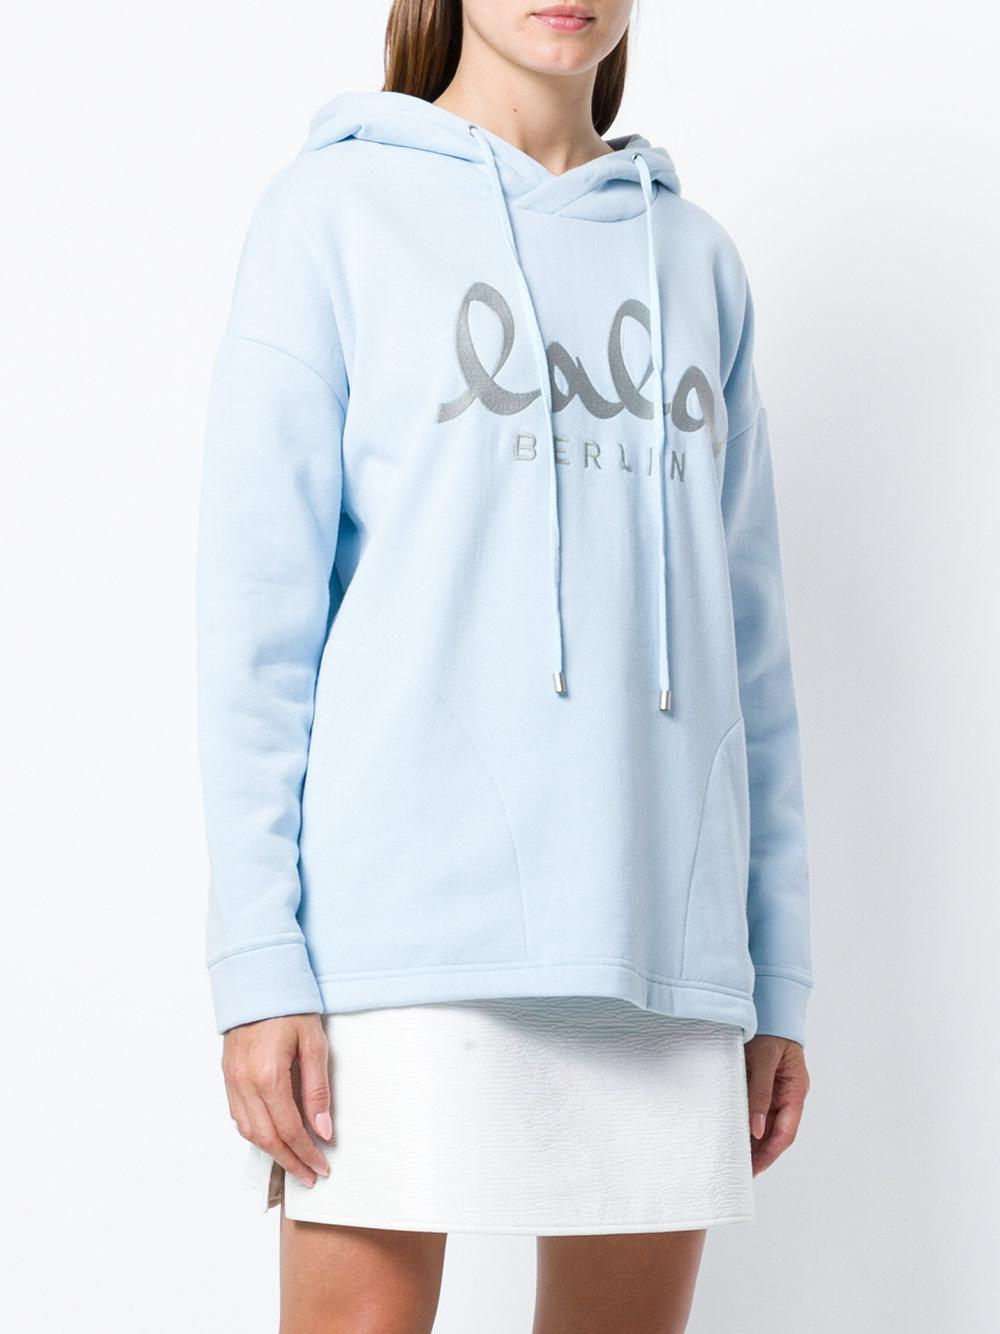 lyst lala berlin embroidered logo hoodie in blue